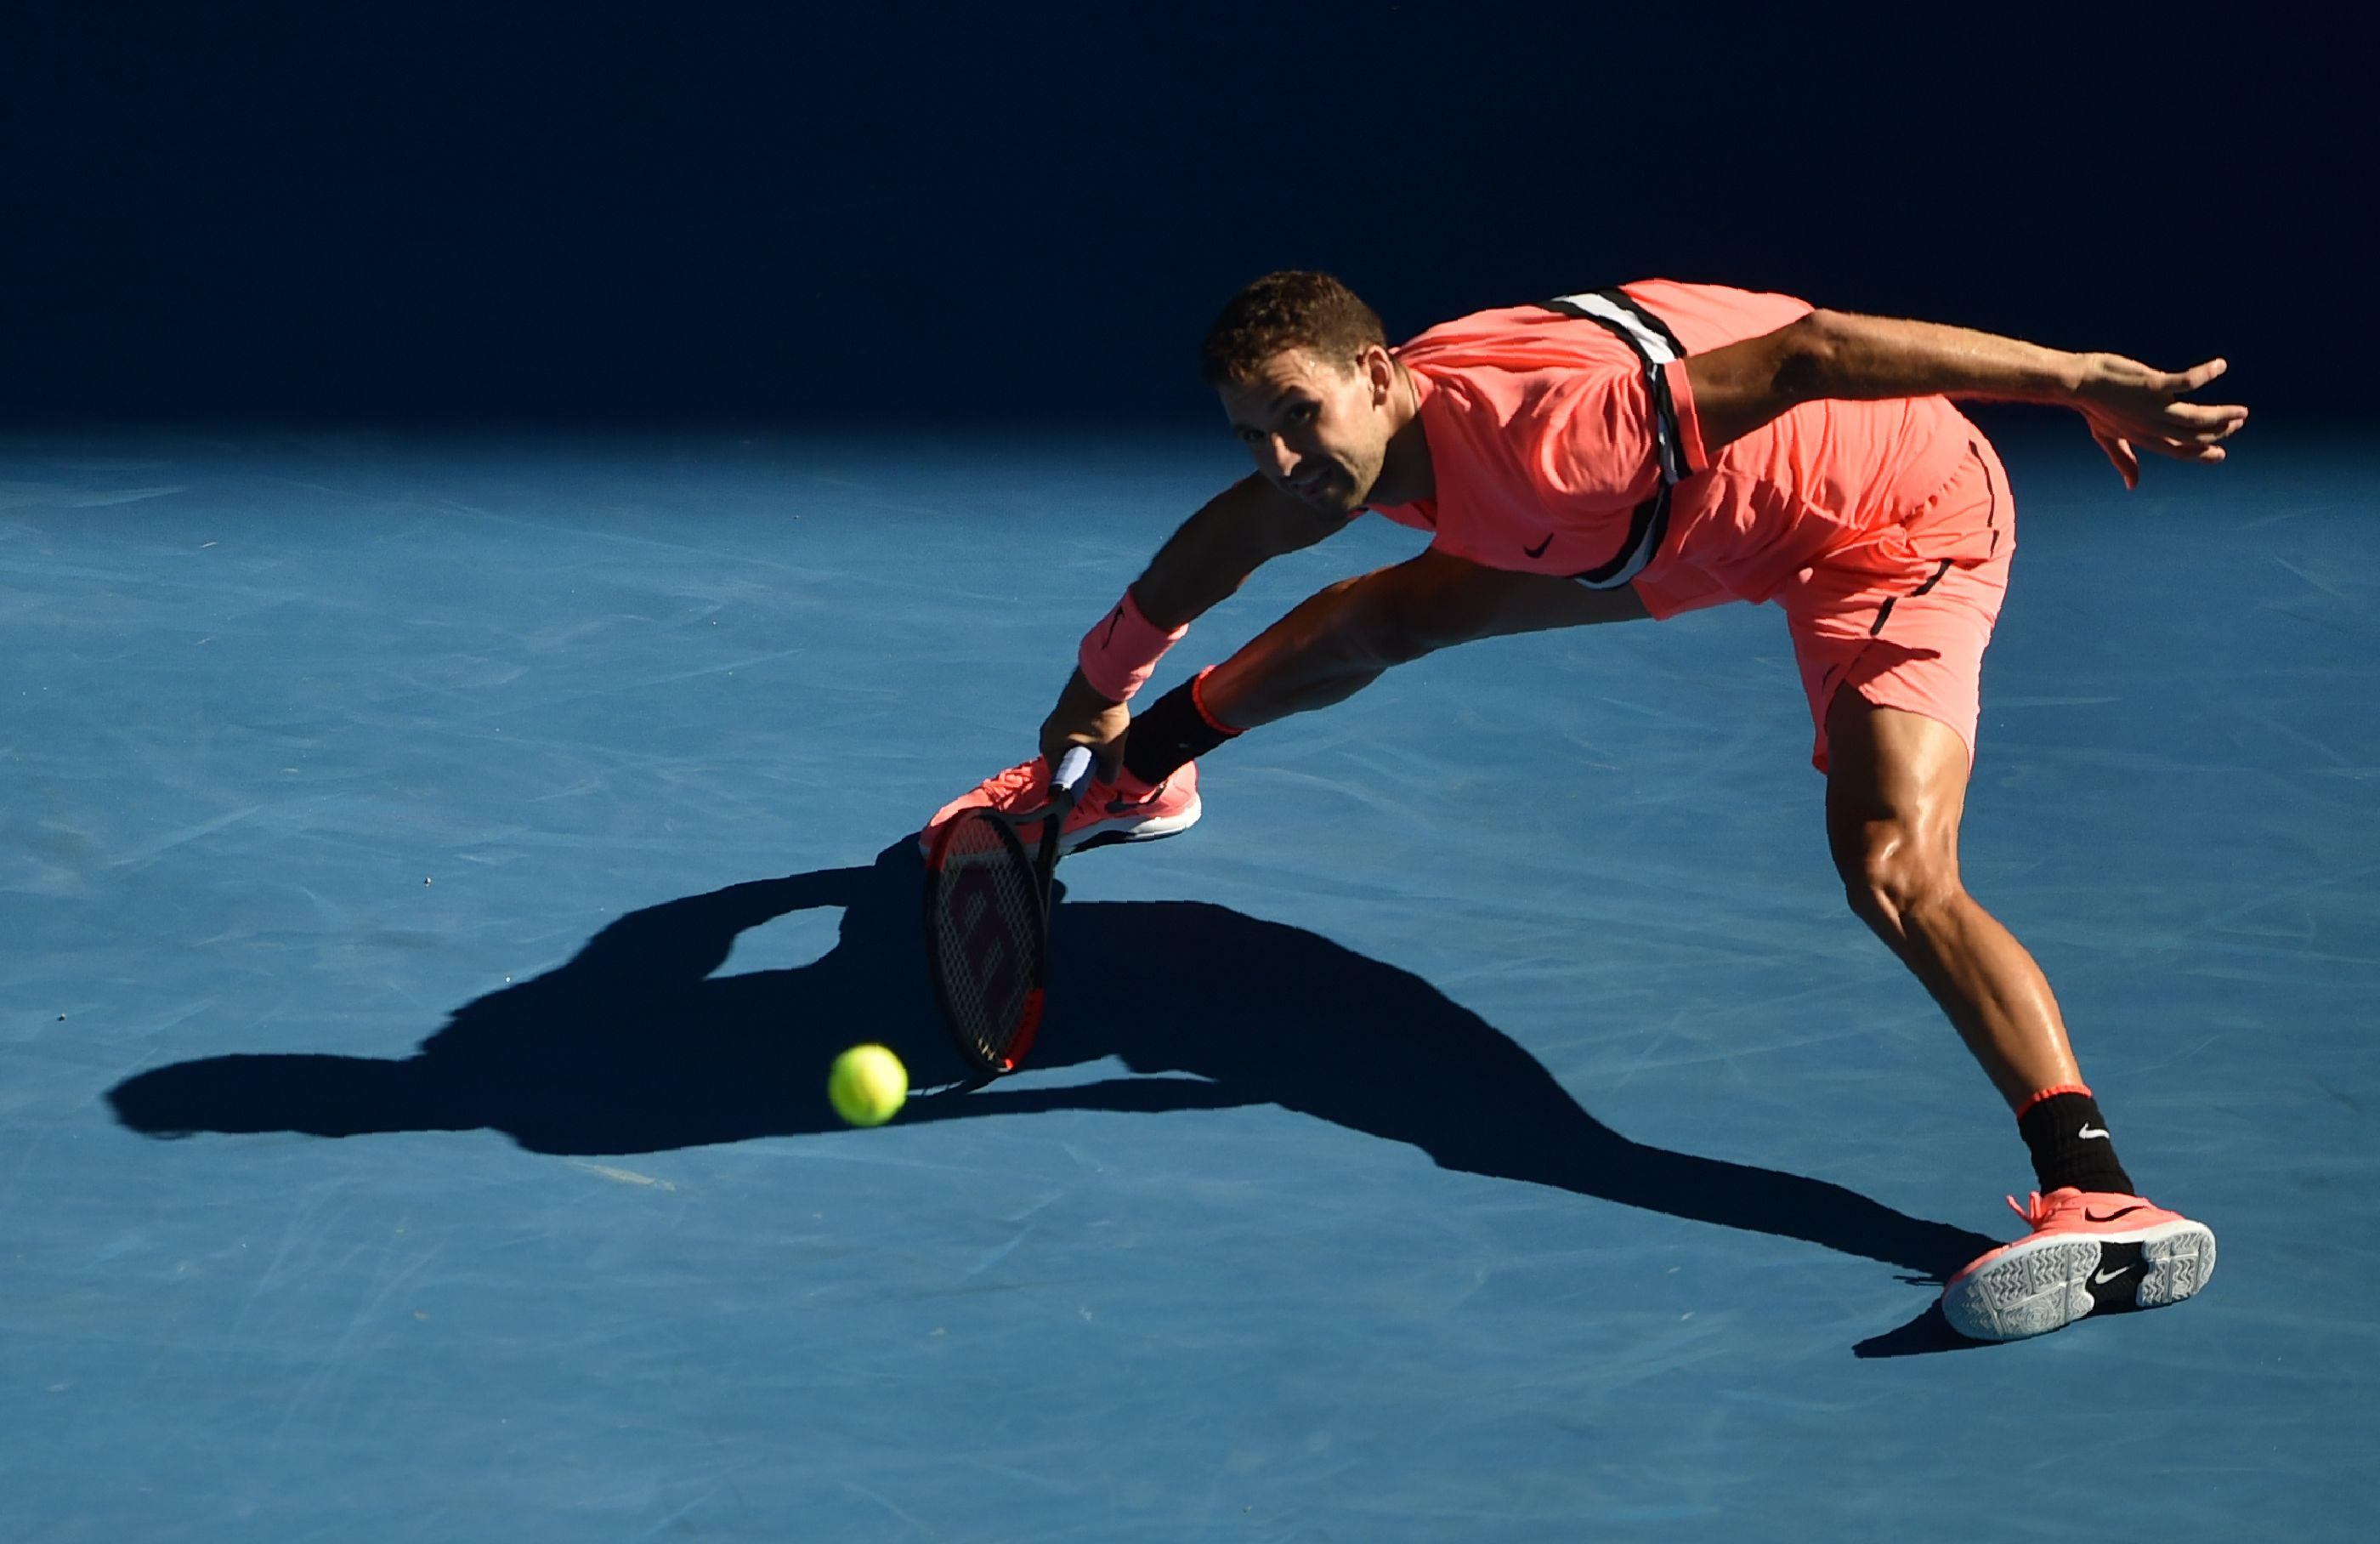 Grigor Dimitrov stretches in an attempt to make a shot at the Australian Open